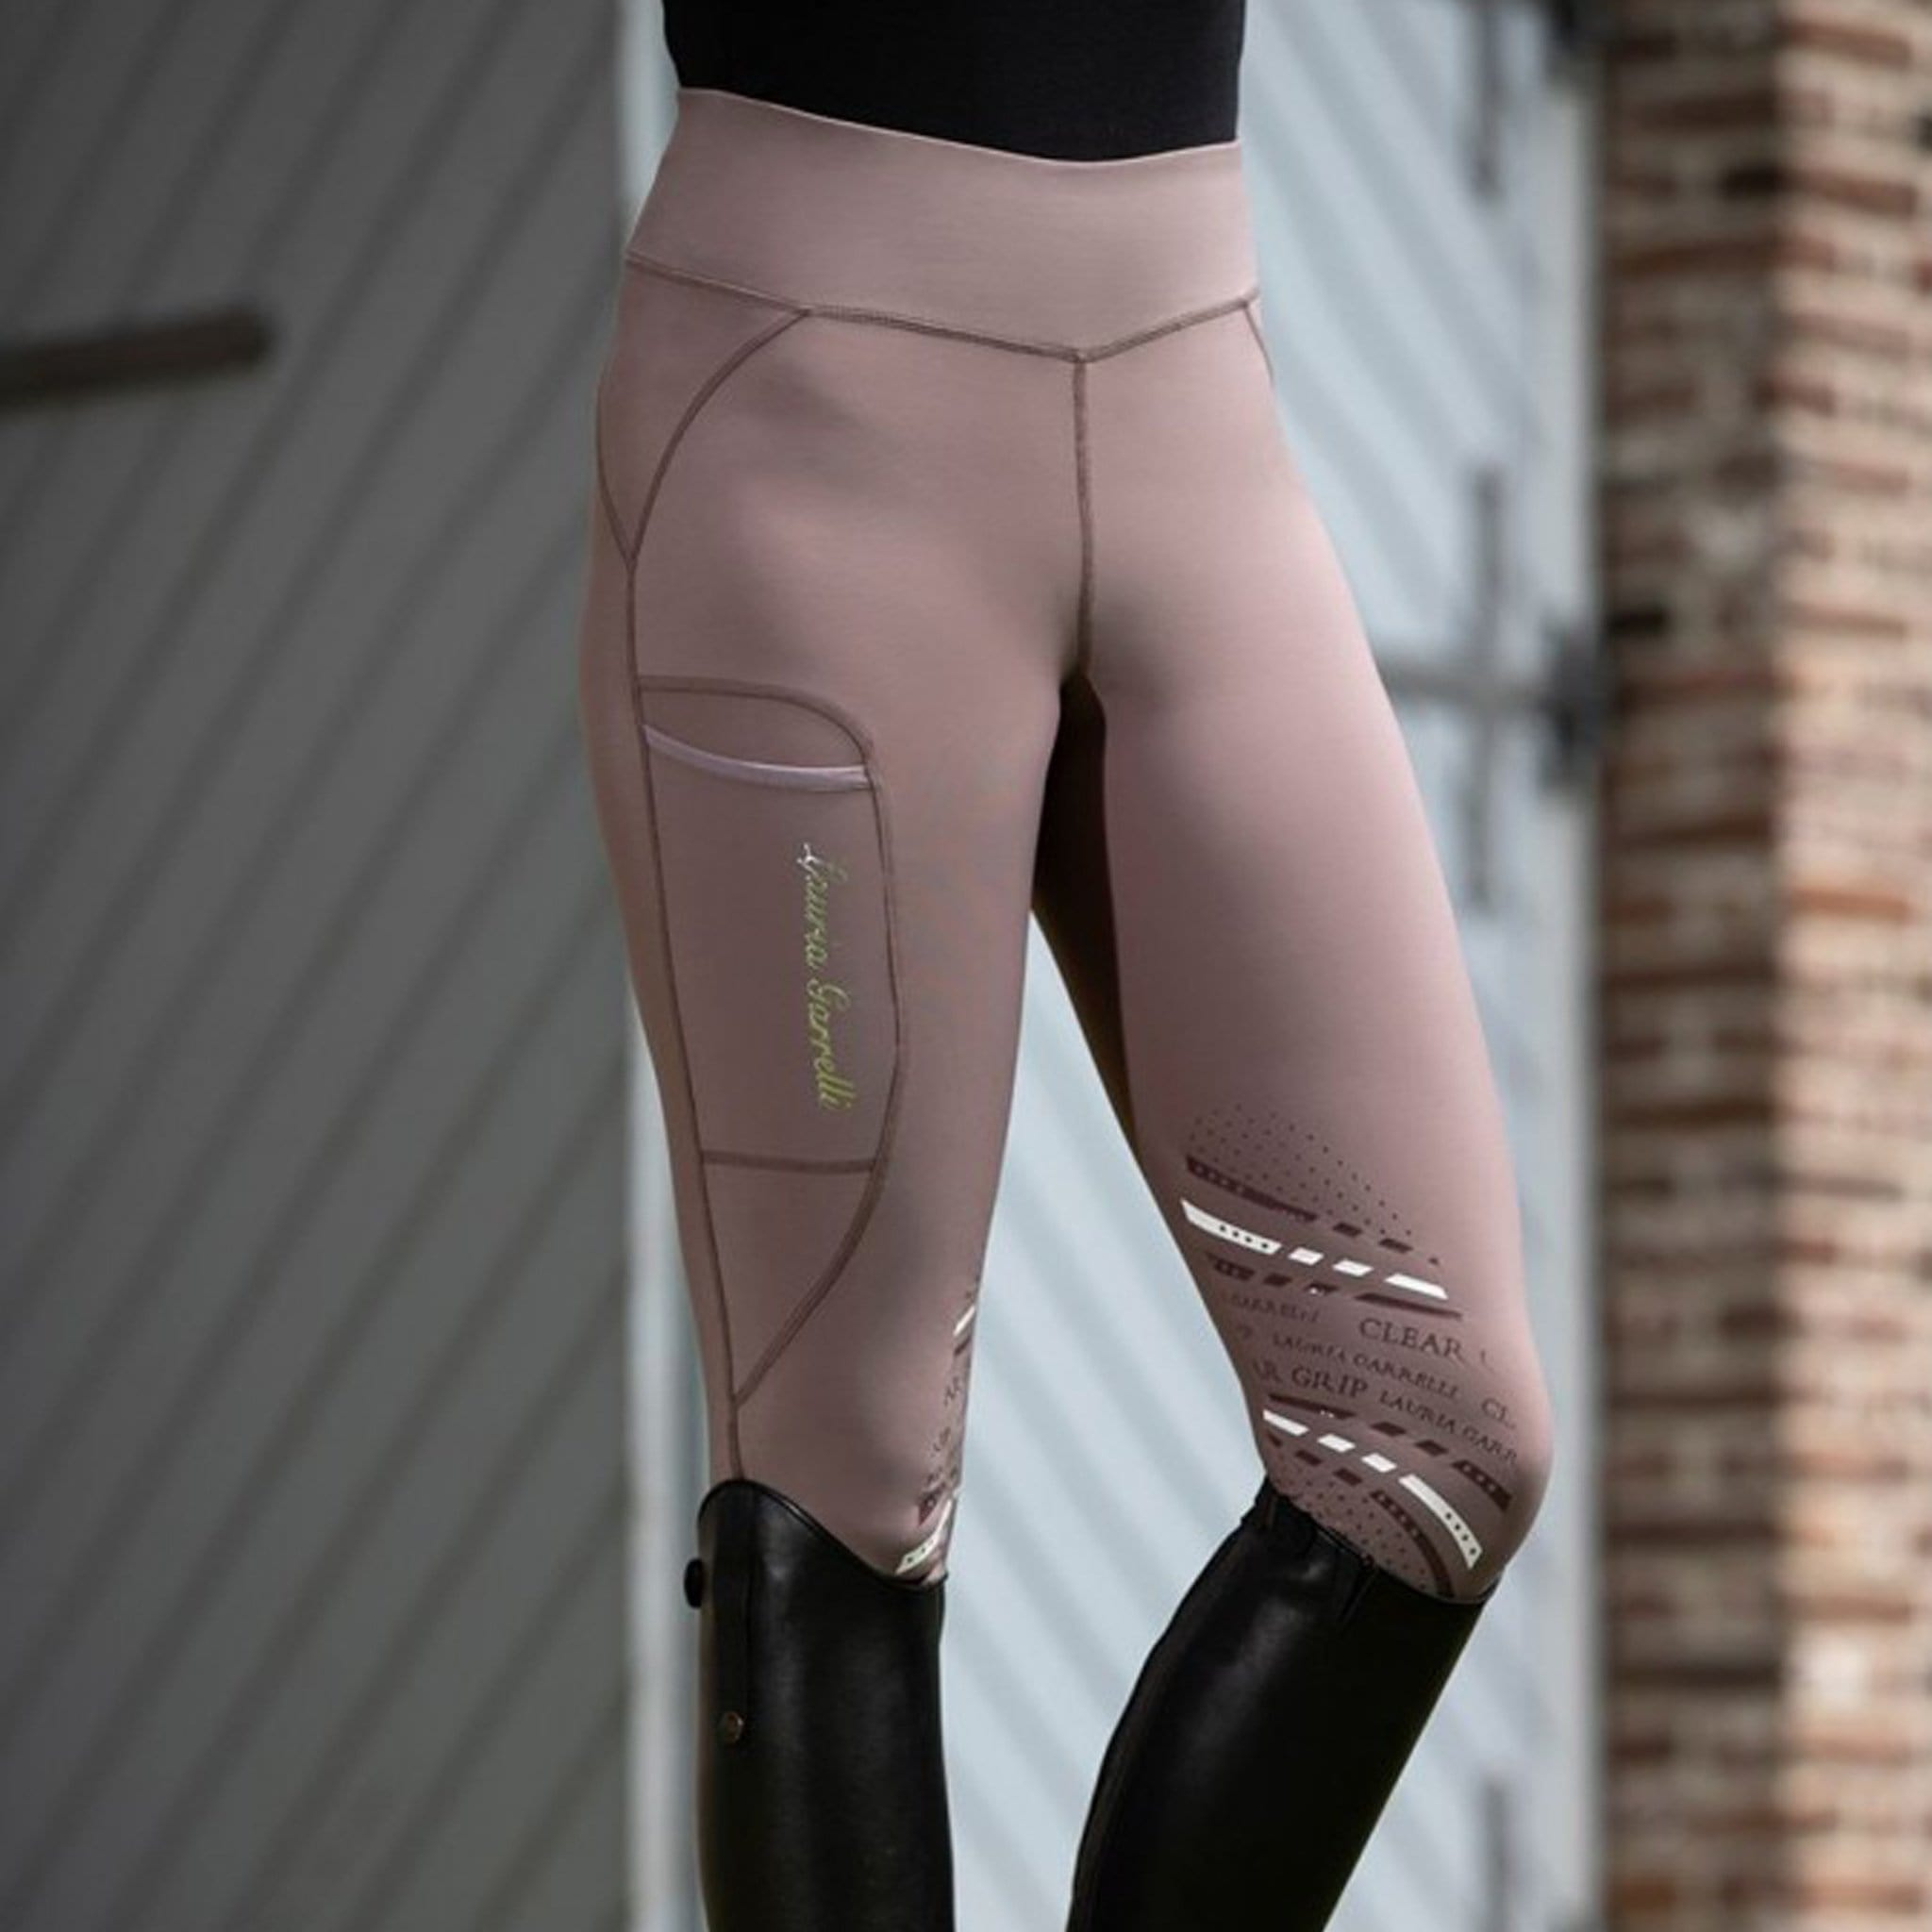 HKM Lauria Garrelli Elemento Silicone Knee Patch Riding Tights 11513 Light Brown On Model Front